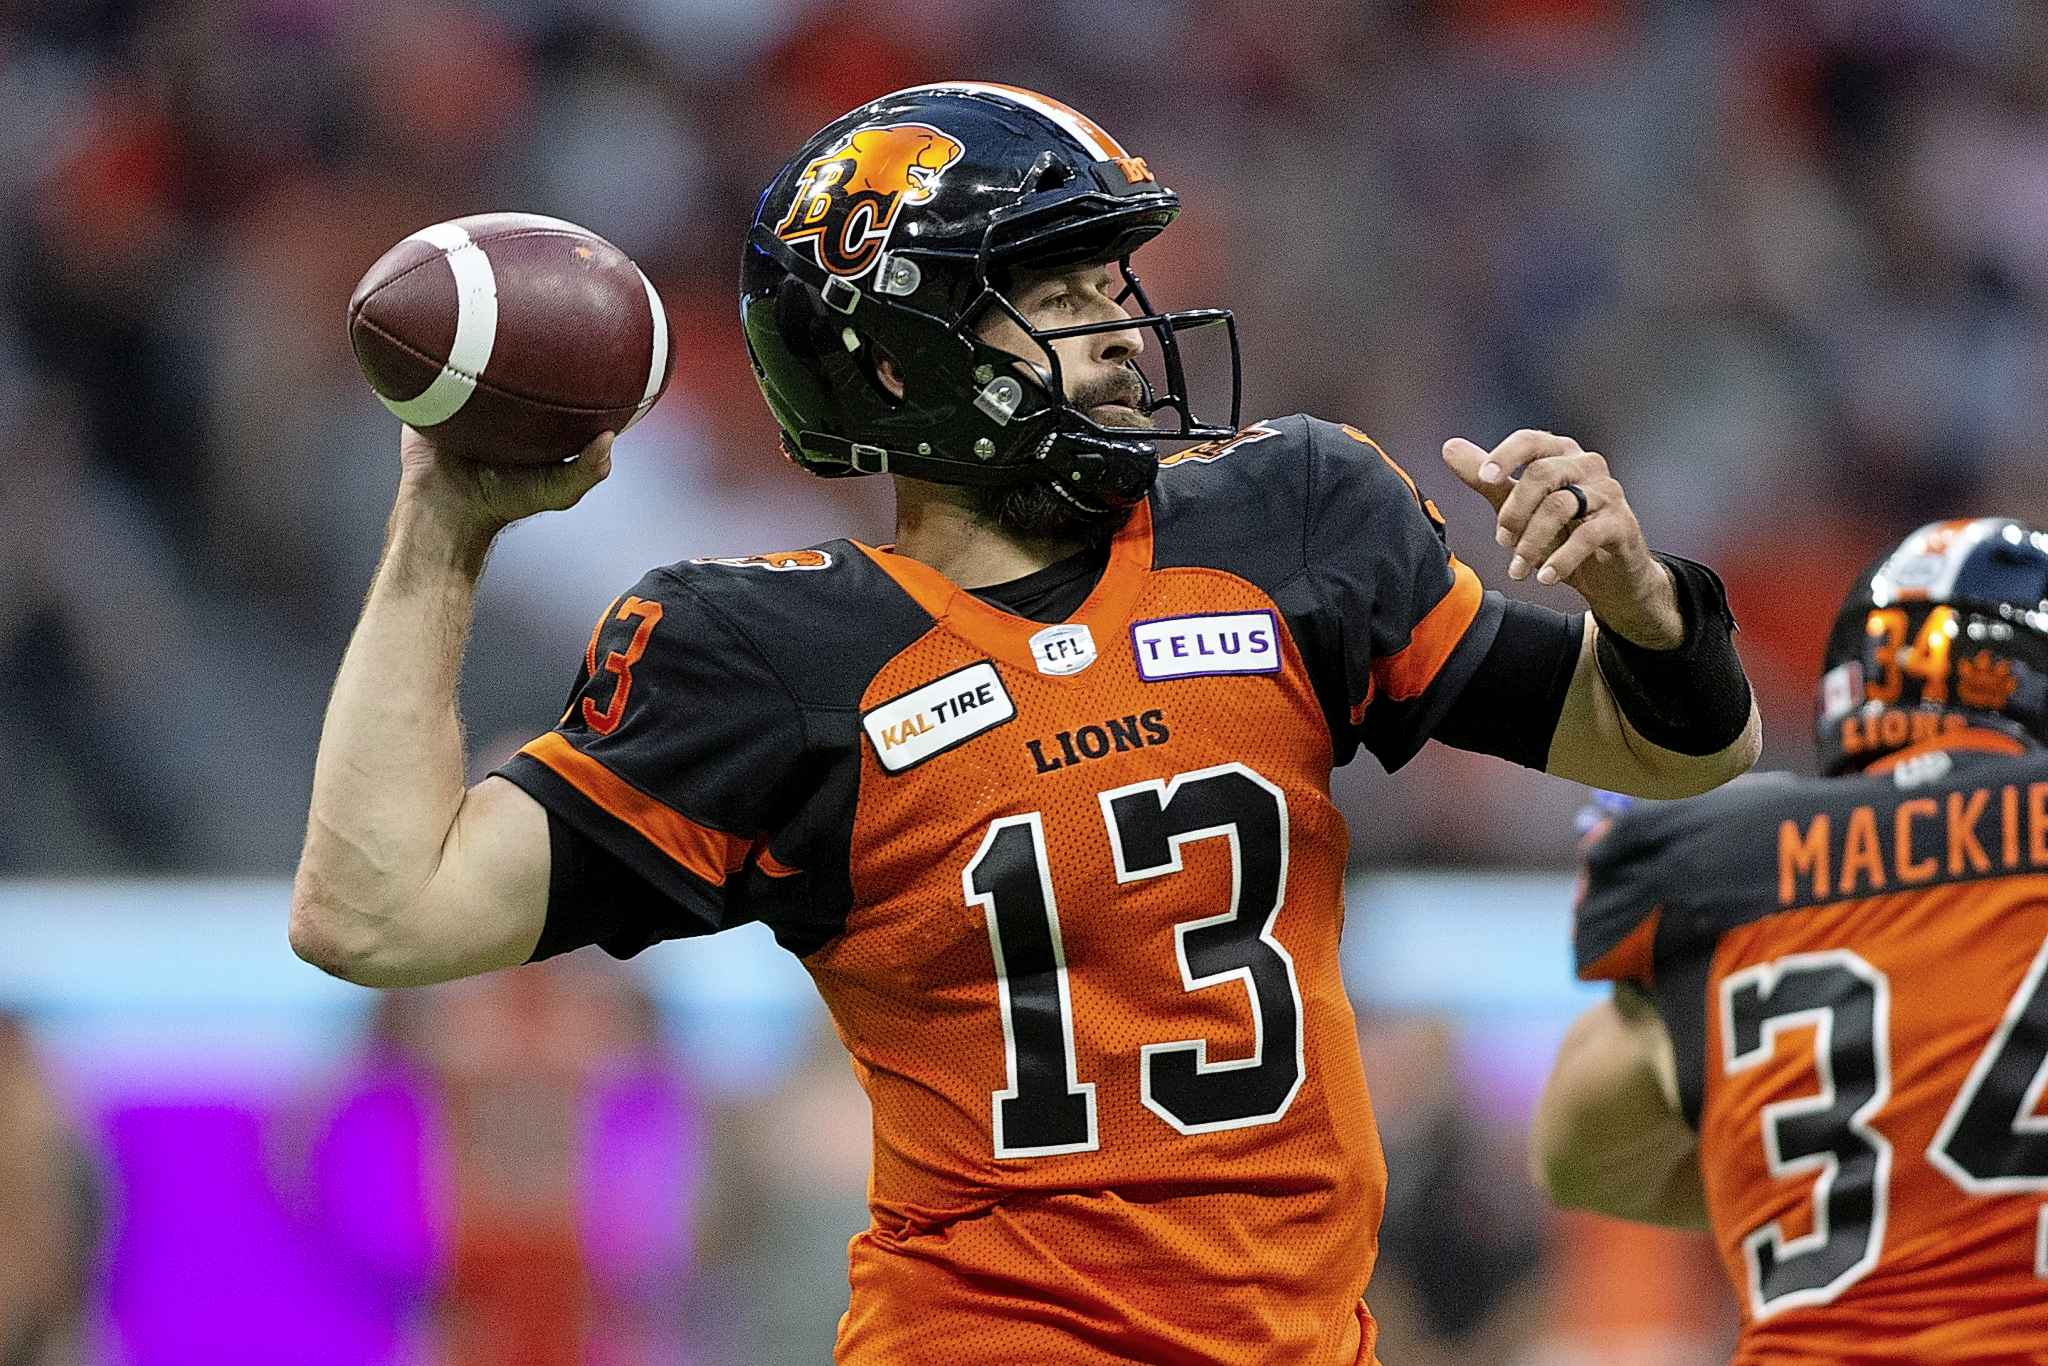 B.C. Lions quarterback Mike Reilly has been sacked 29 times through the first eight games of the season.